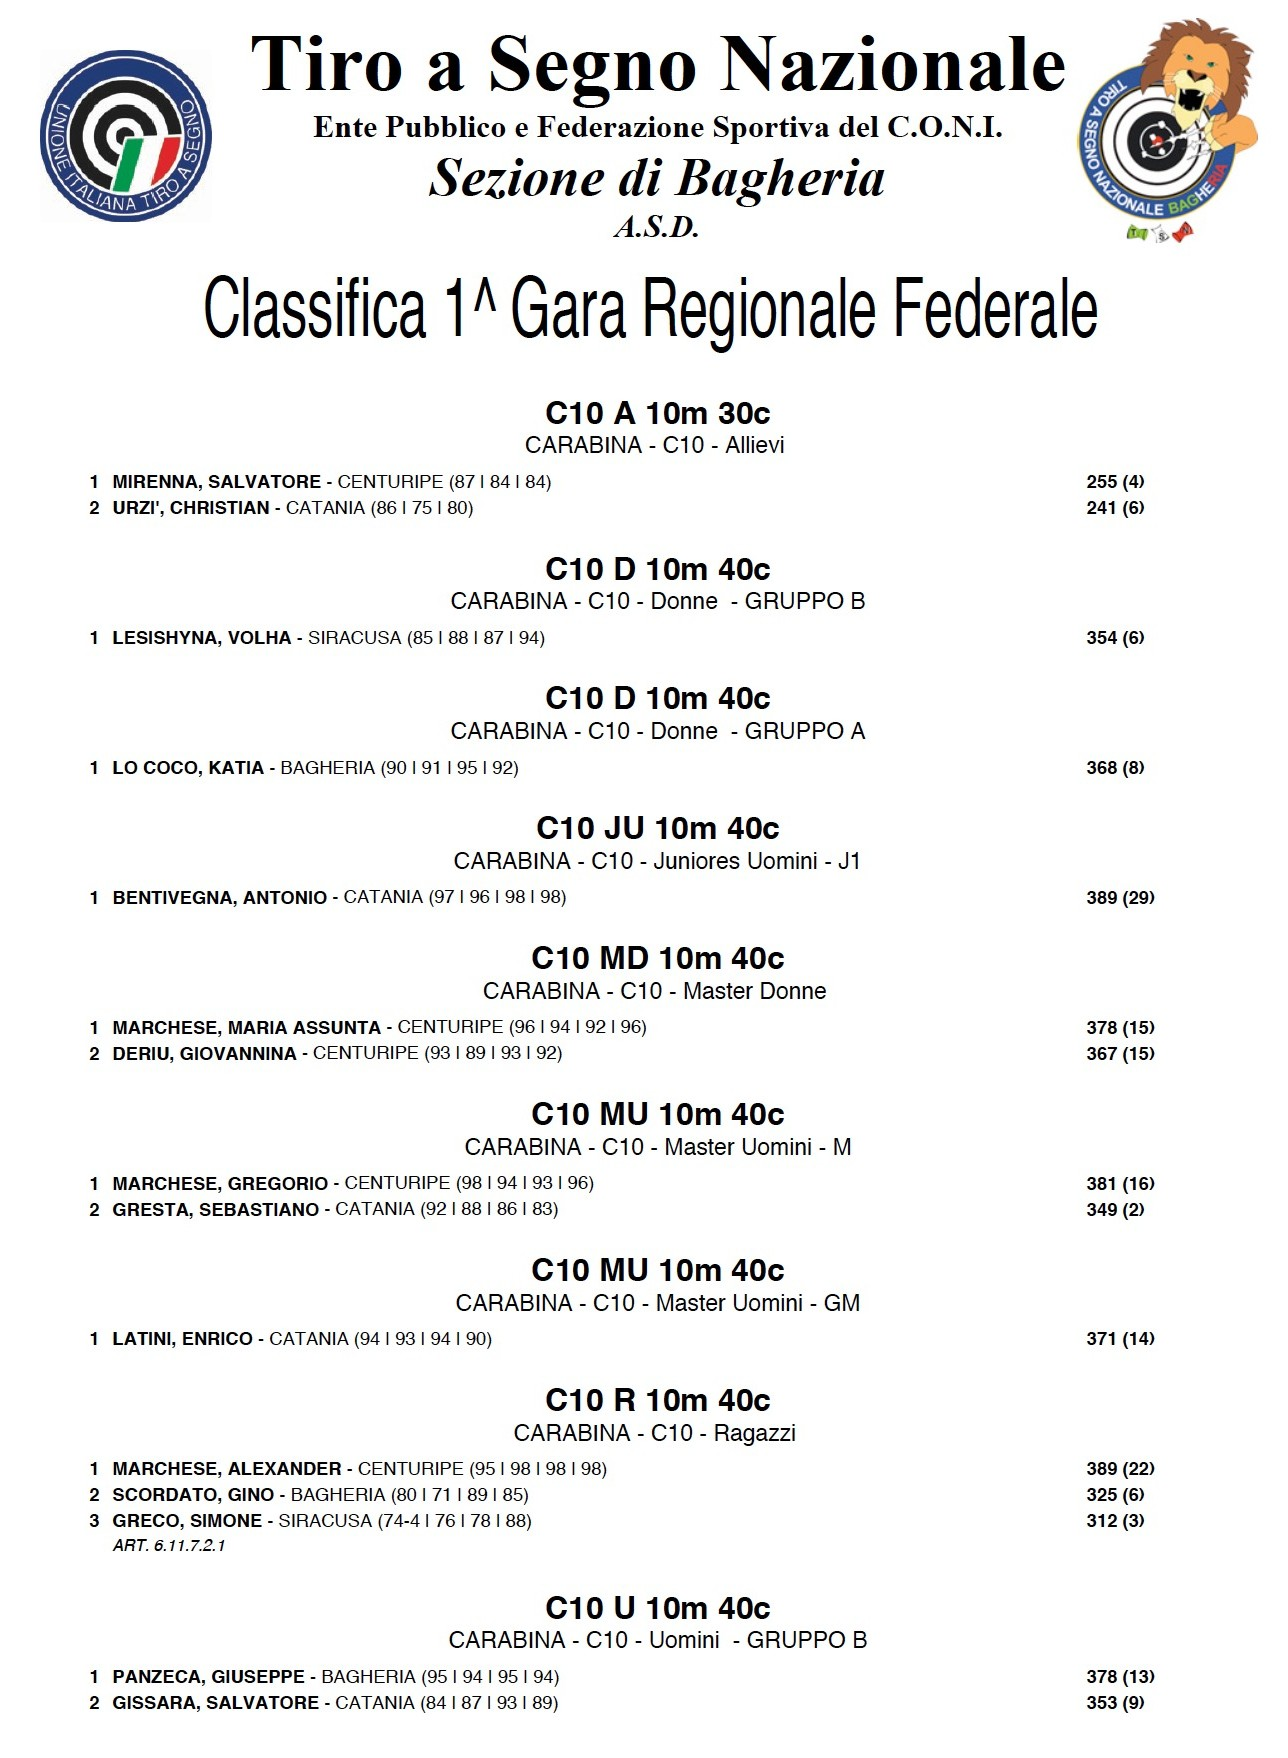 Classifica Prima gara federale 2017